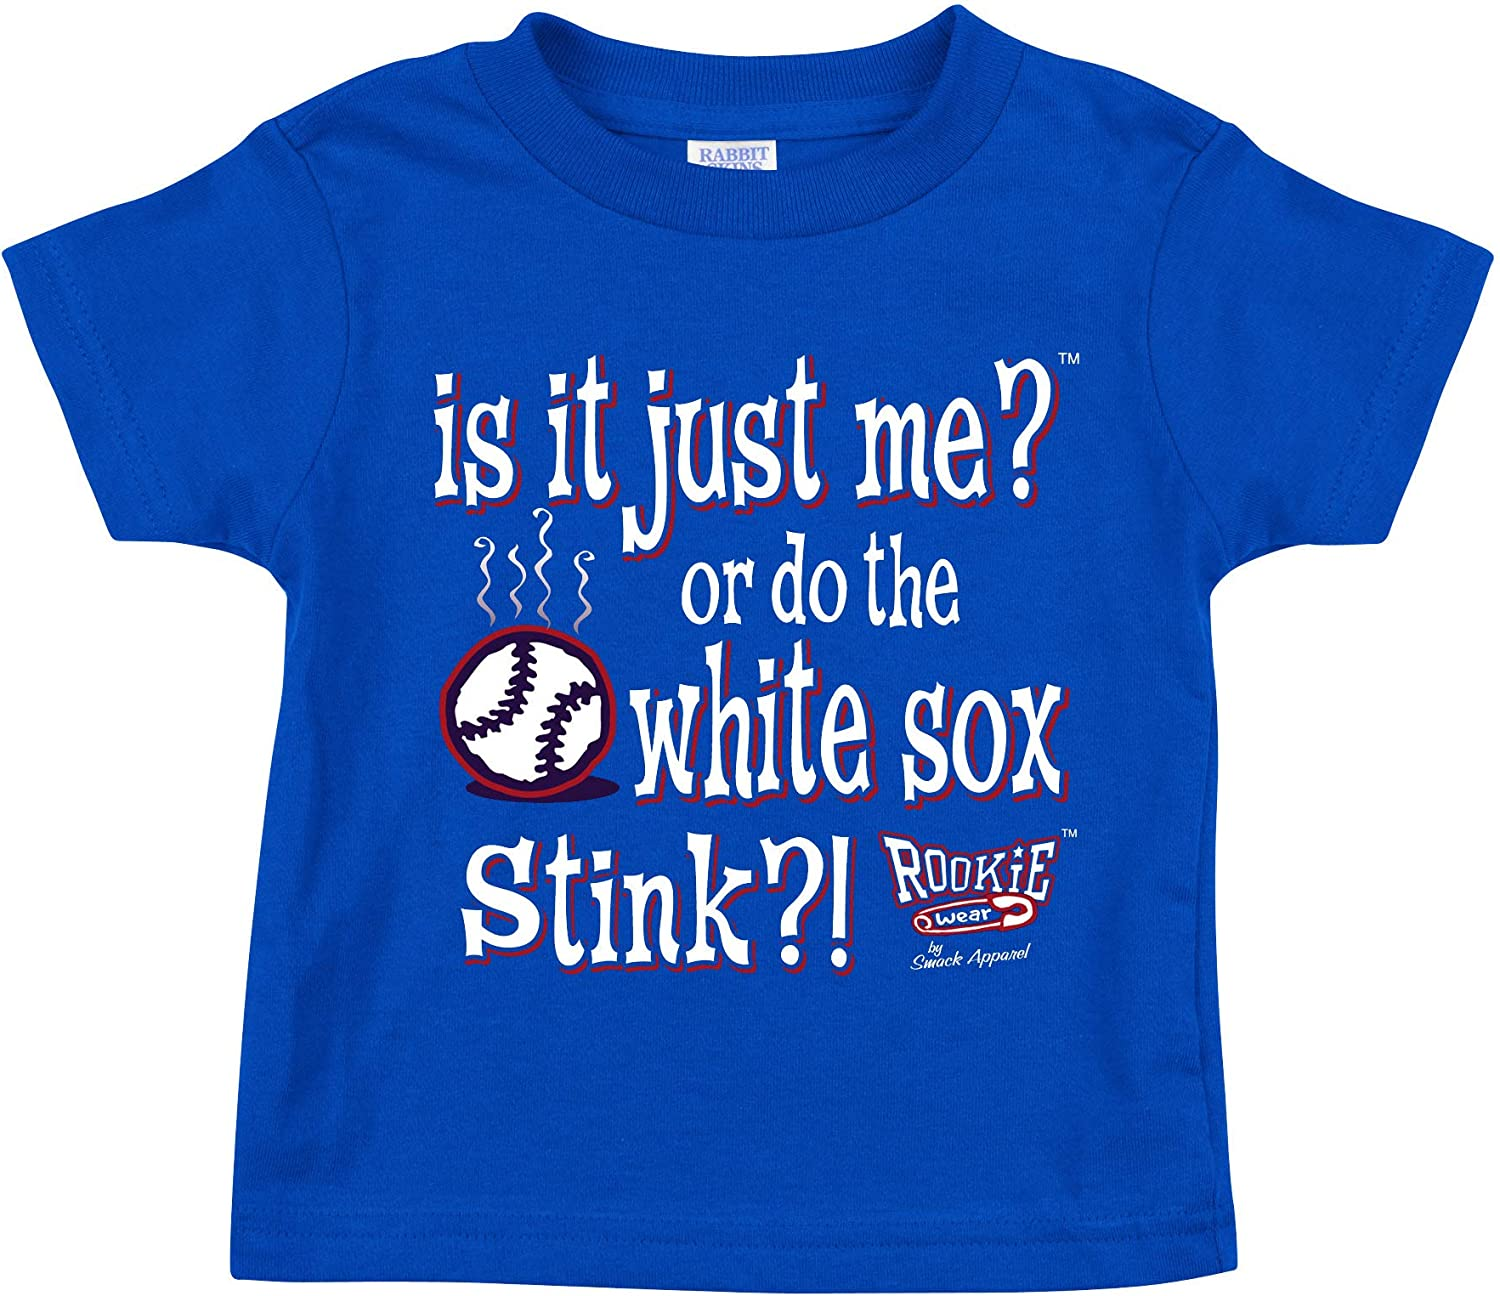 Rookie Wear By Smack Apparel Chicago Baseball Fans Blue Onesie or Toddler Tee NB-4T is It Just Me?